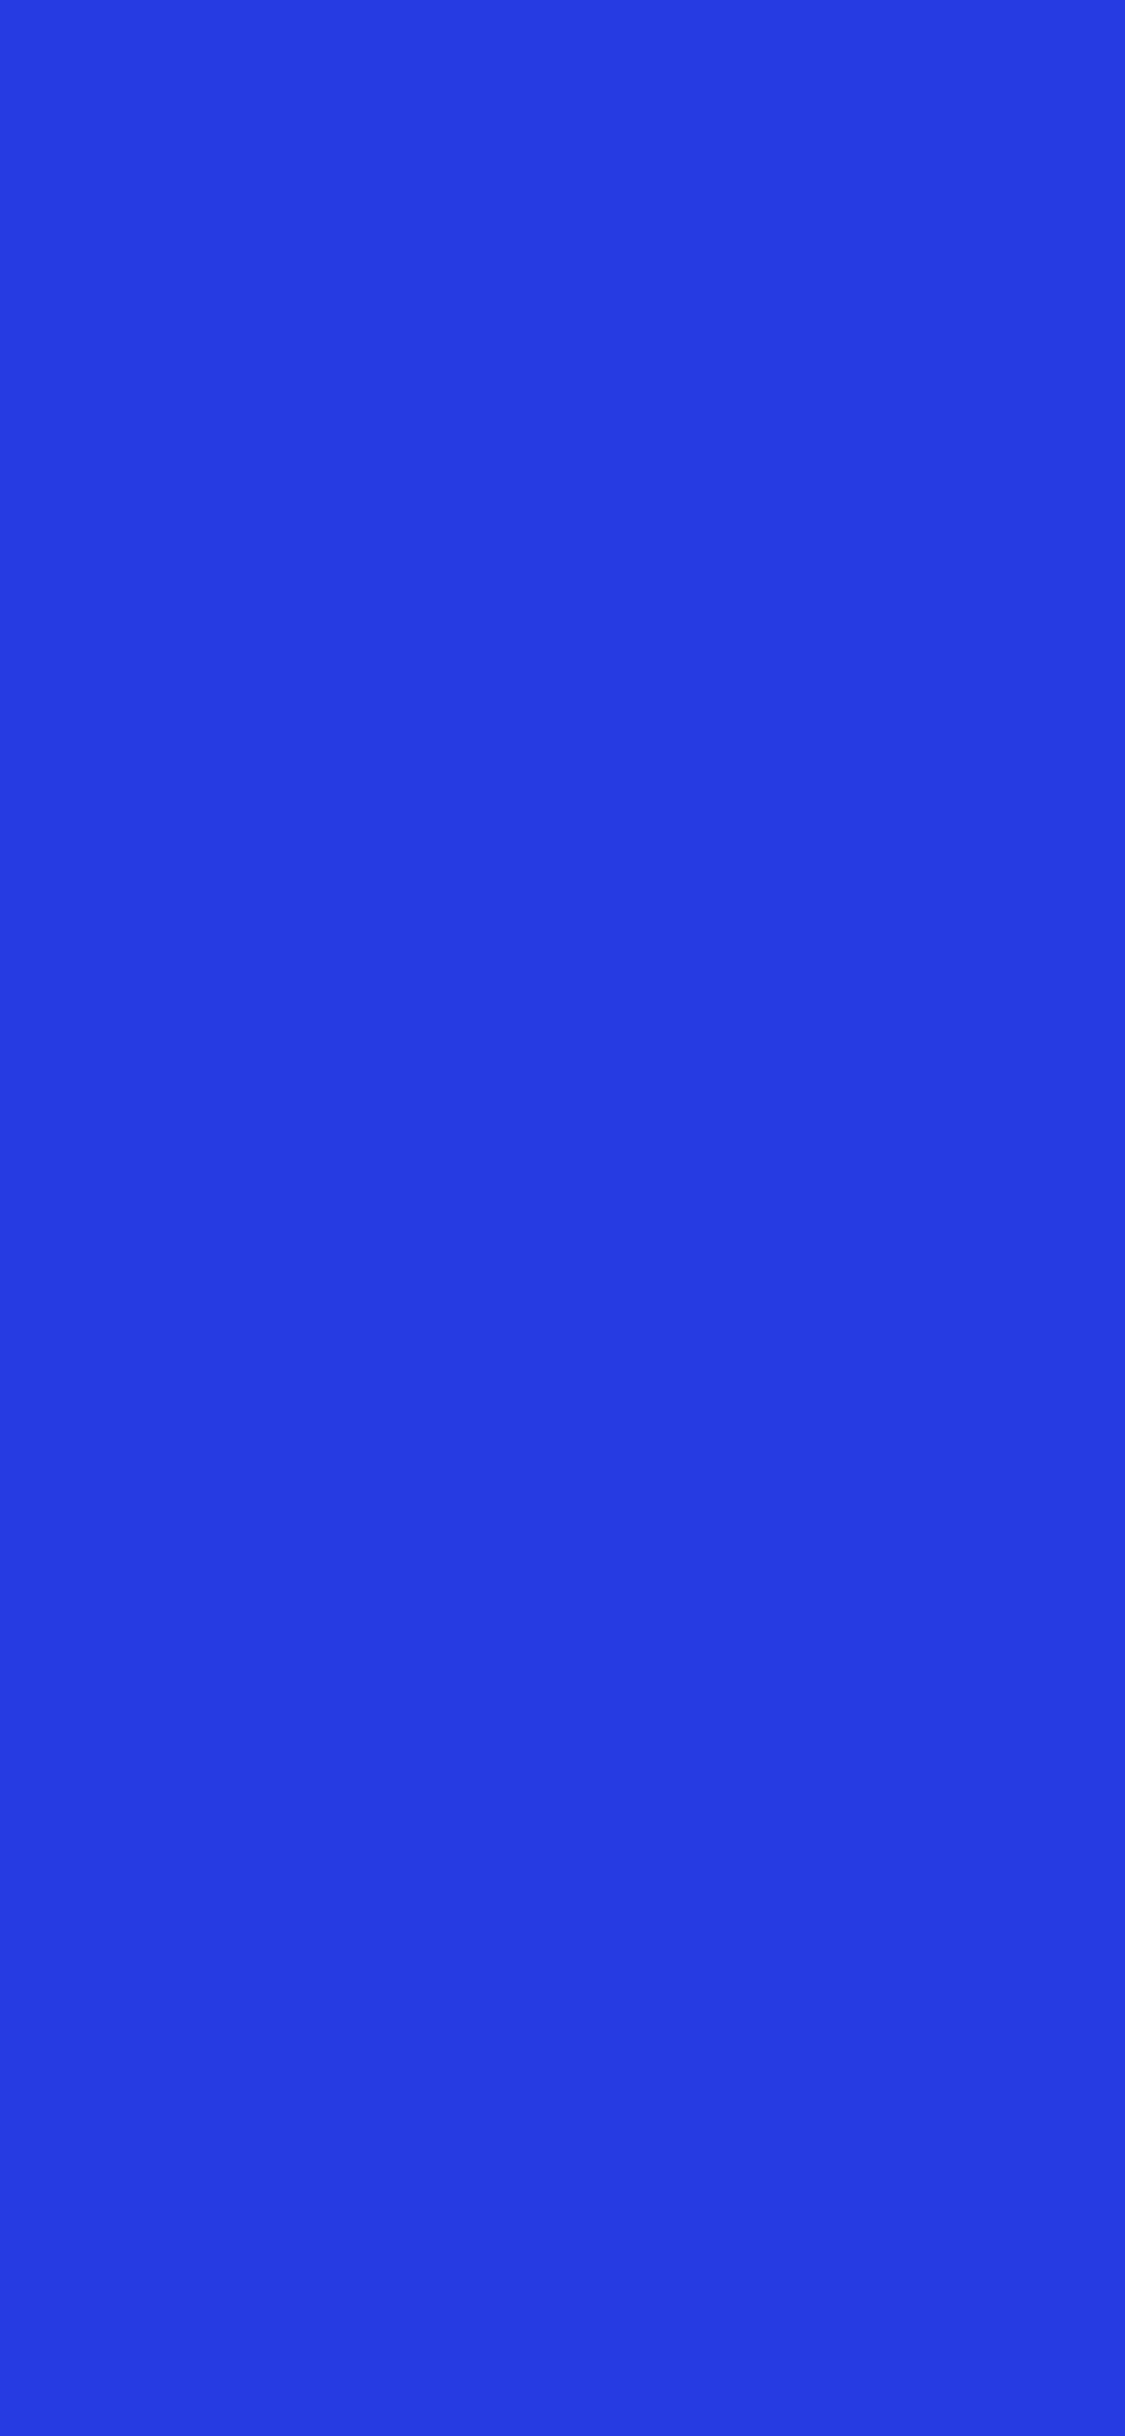 1125x2436 Palatinate Blue Solid Color Background